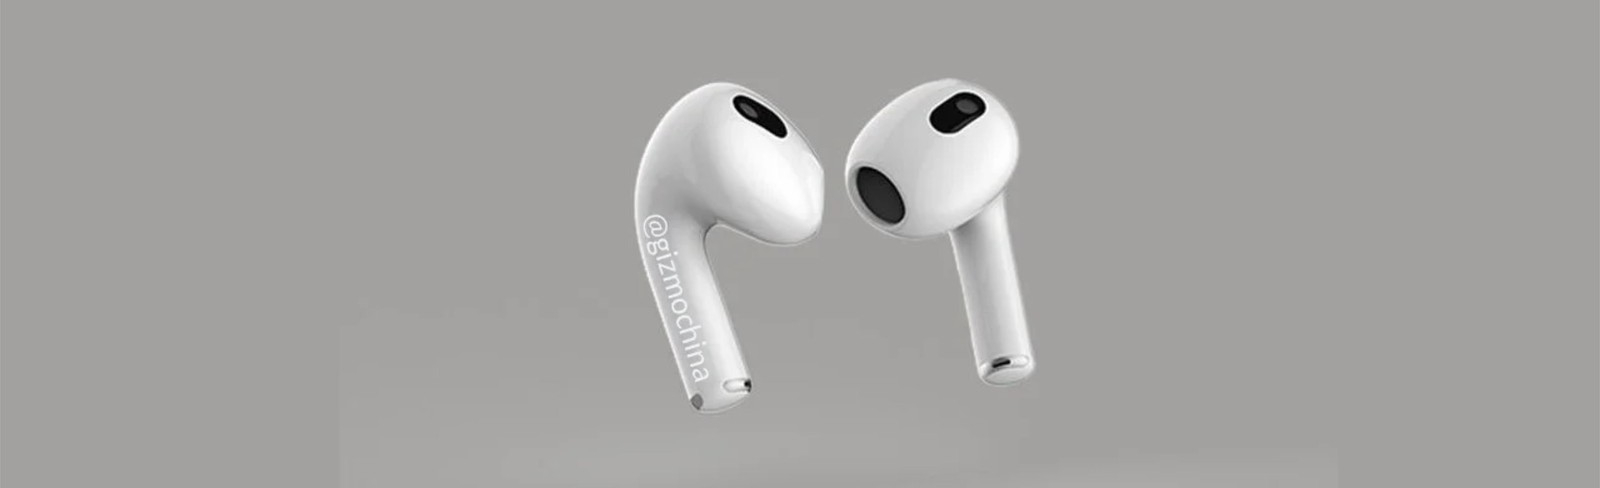 AirPods 3: Feature